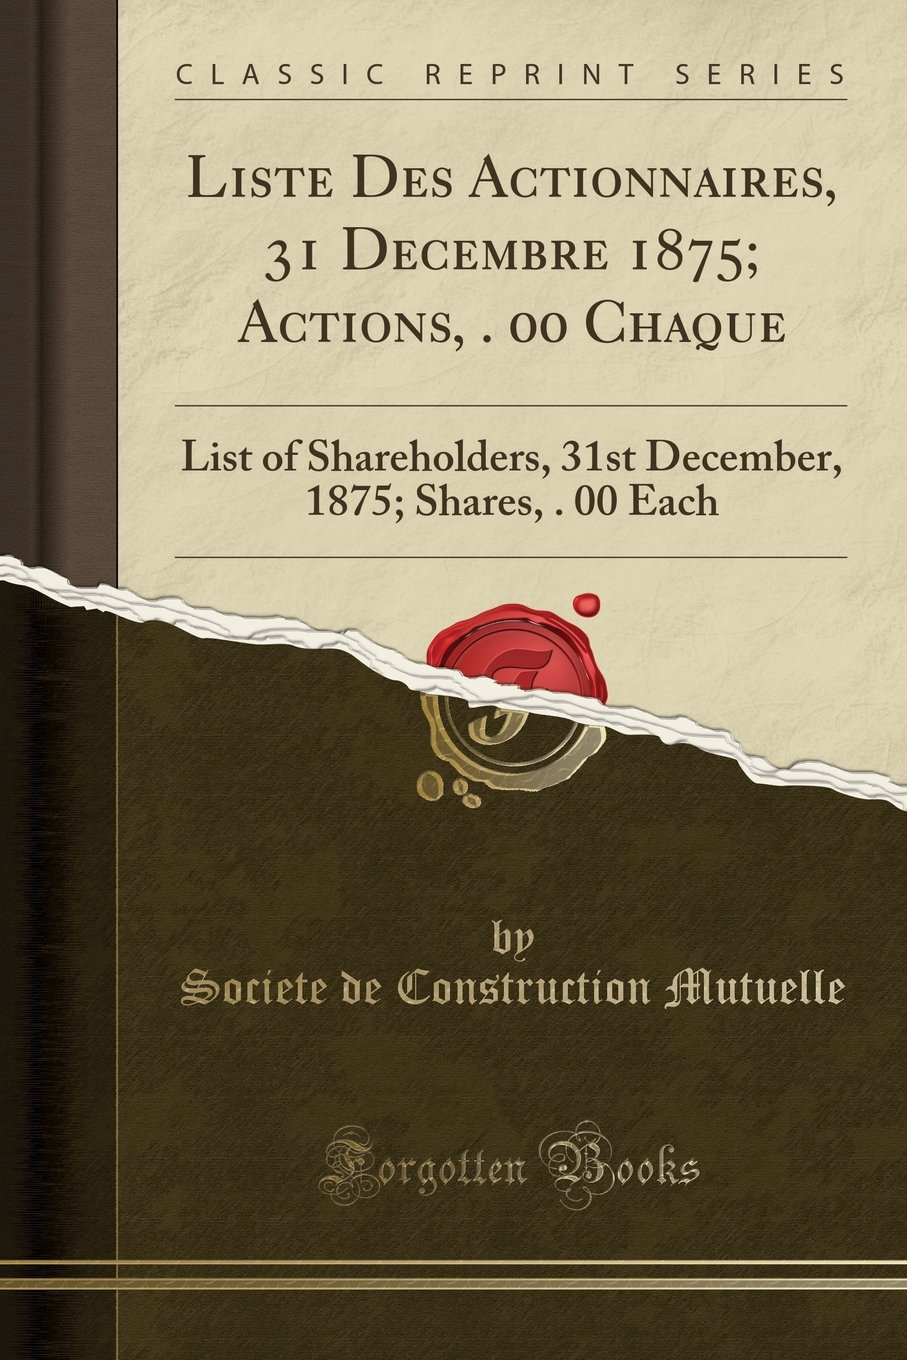 Read Online Liste Des Actionnaires, 31 Decembre 1875; Actions, $100. 00 Chaque: List of Shareholders, 31st December, 1875; Shares, $100. 00 Each (Classic Reprint) ebook